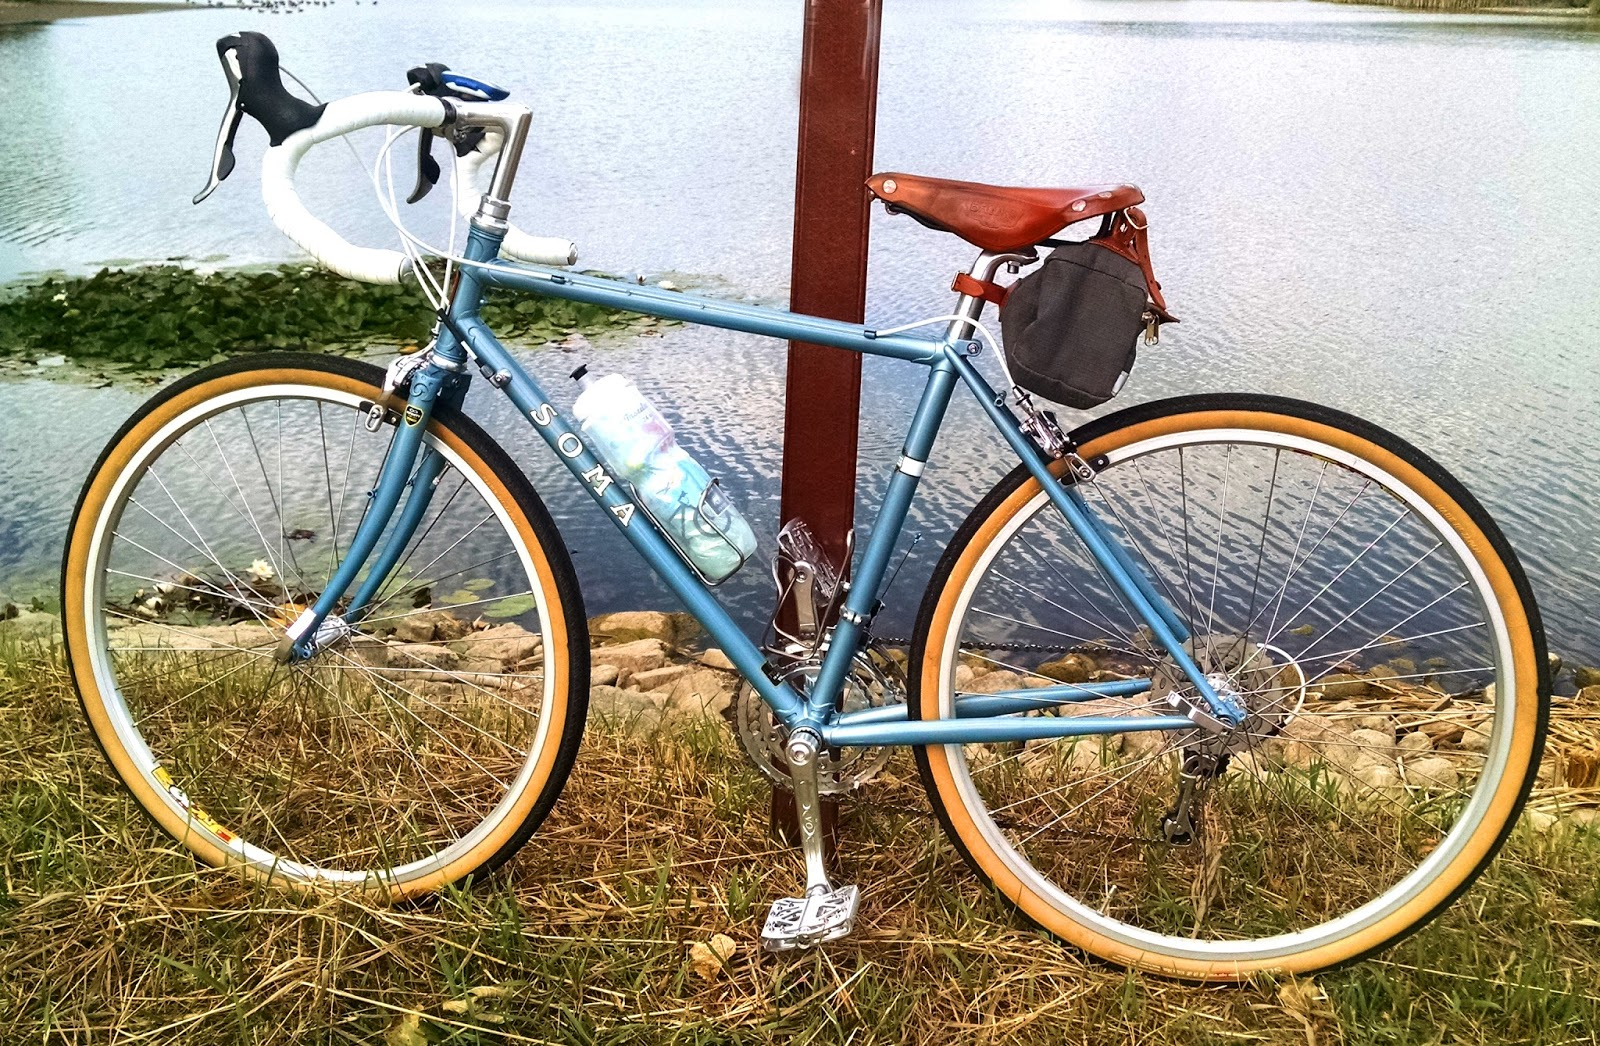 Endless Velo Love: Rivenoma or Somadell? Thoughts on a Soma San Marcos